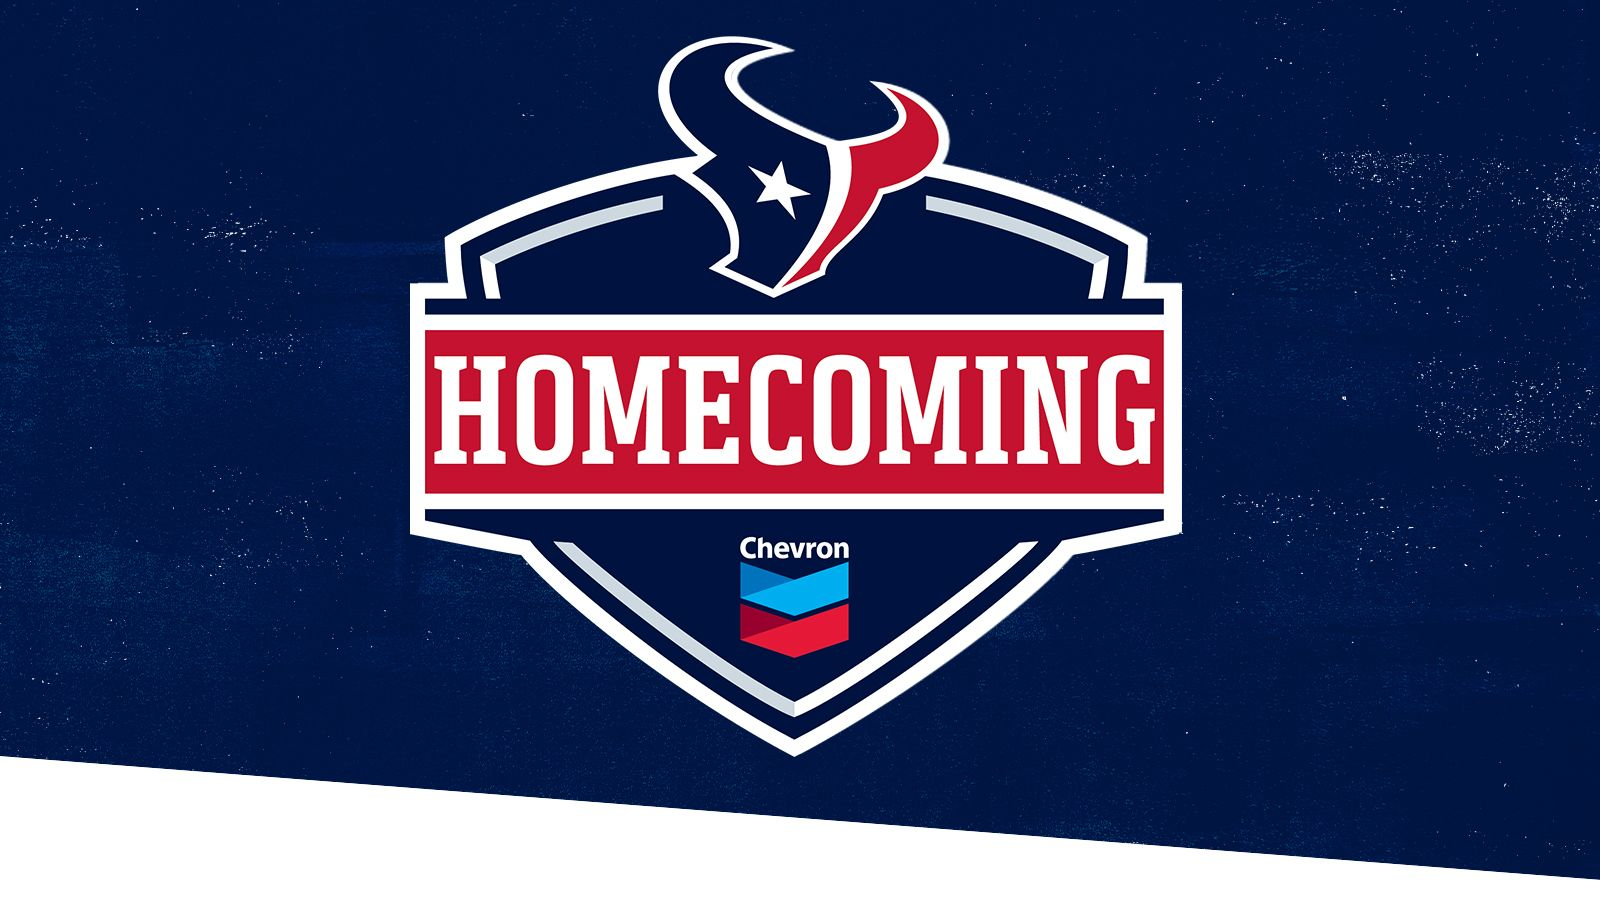 Homecoming presented by Chevron